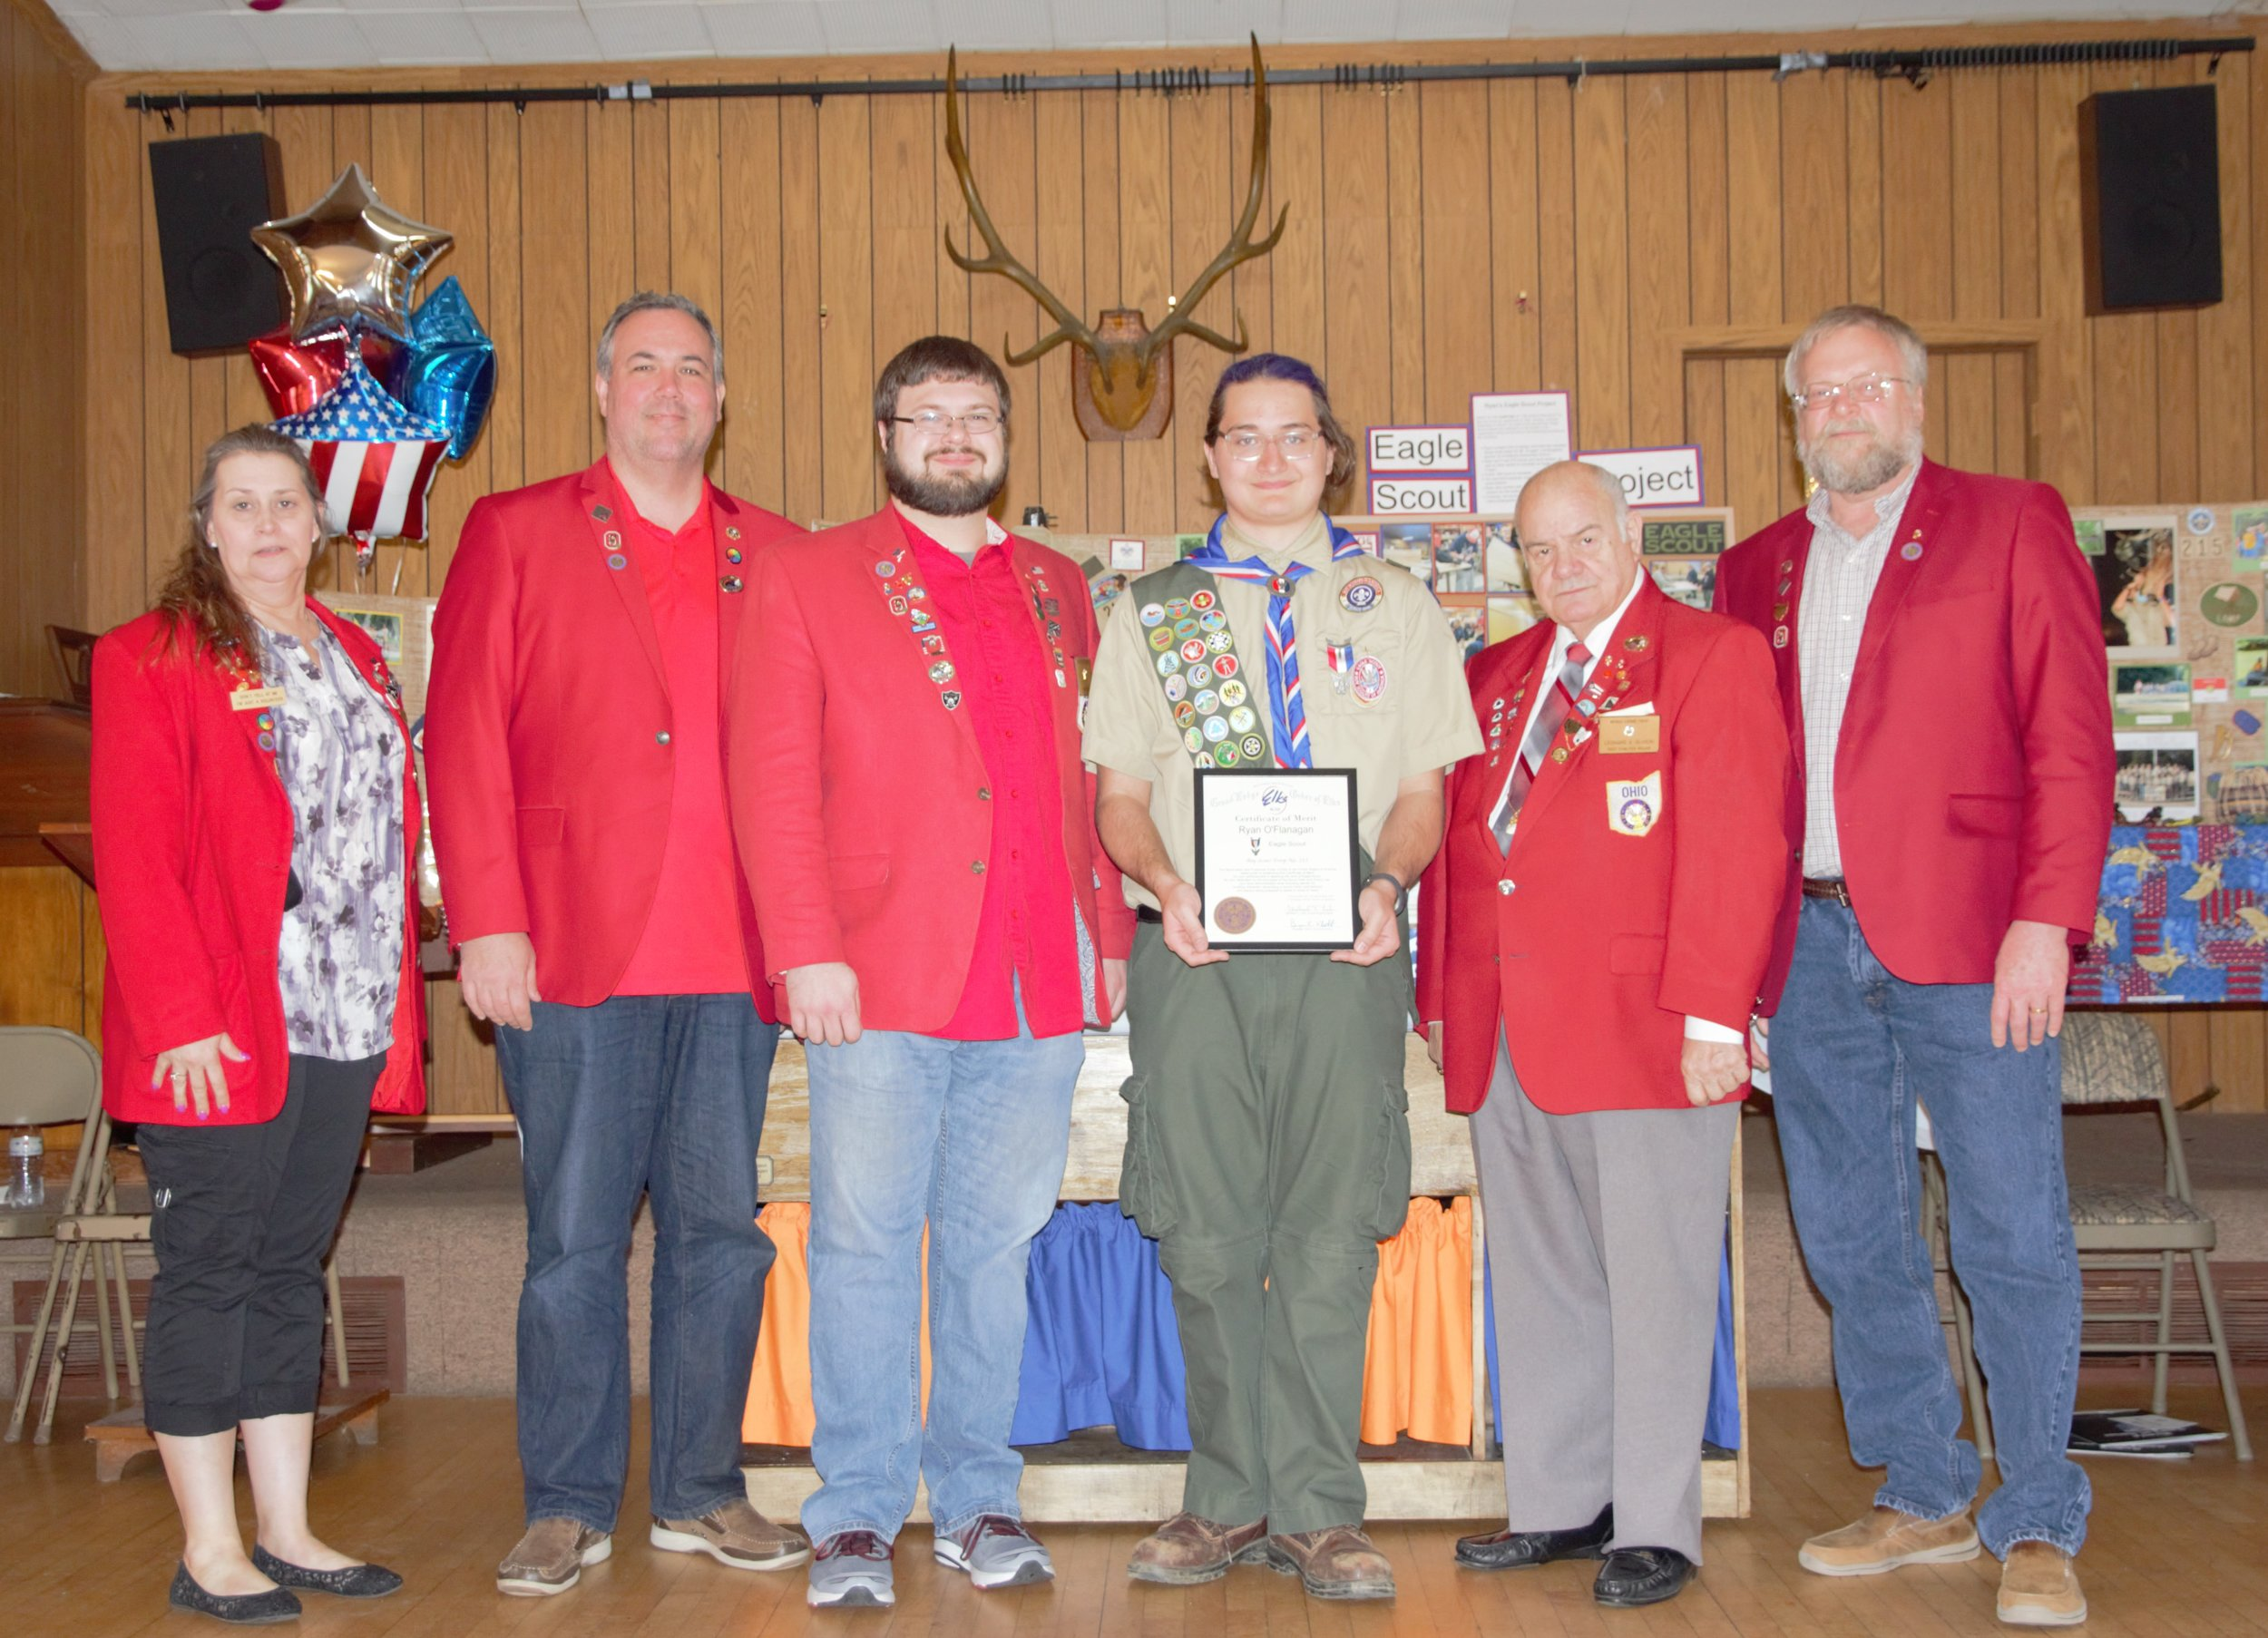 From left to right is Danielle Mahany, Treasurer; Richard Threadgill PER; Jeff Coyle, ER; Ryan O'Flanagan, Eagle Scout; Leonard Oliveri, Esquire; and John Masterson, Trustee.